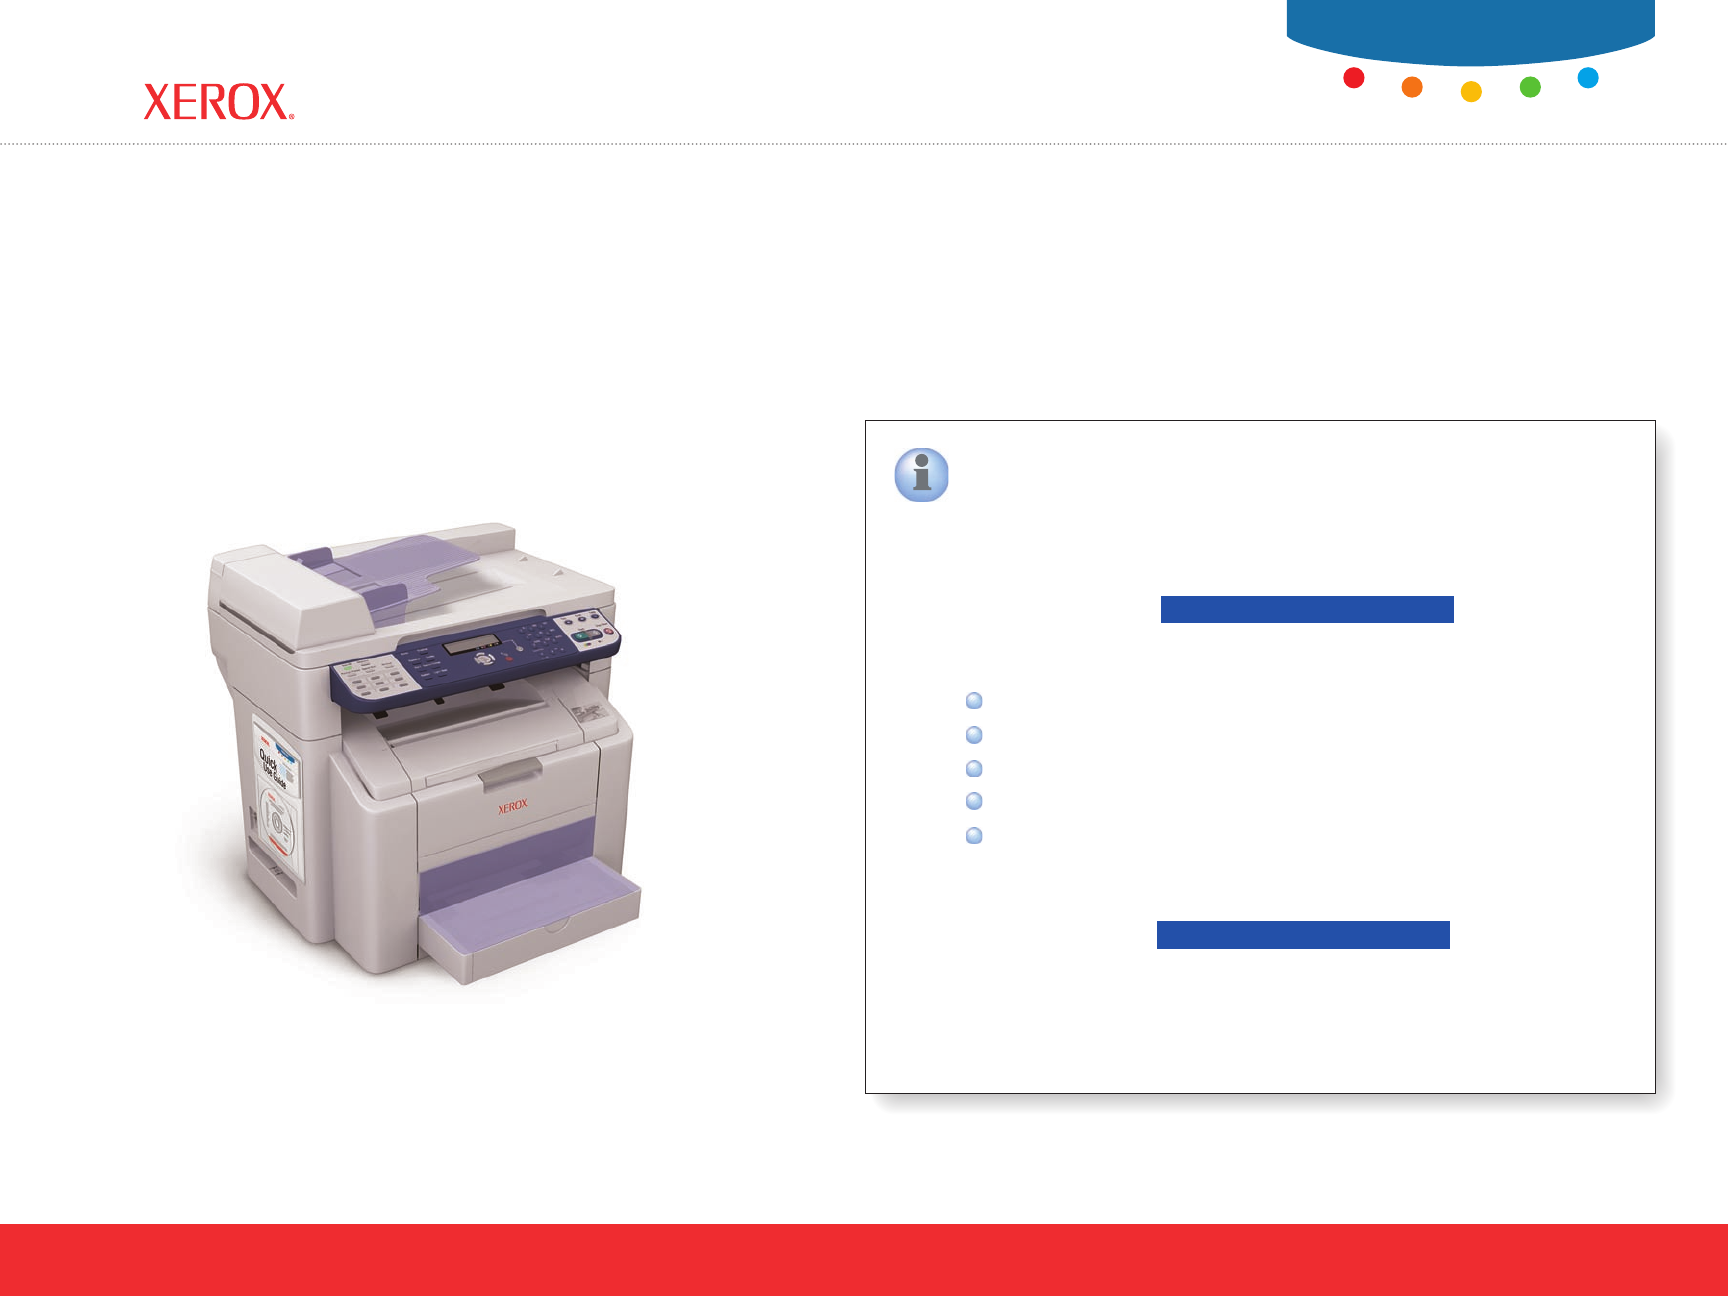 xerox phaser 6115mfp users manual phaser quick use guide rh usermanual wiki Xerox Phaser 8560 Xerox Phaser 6180